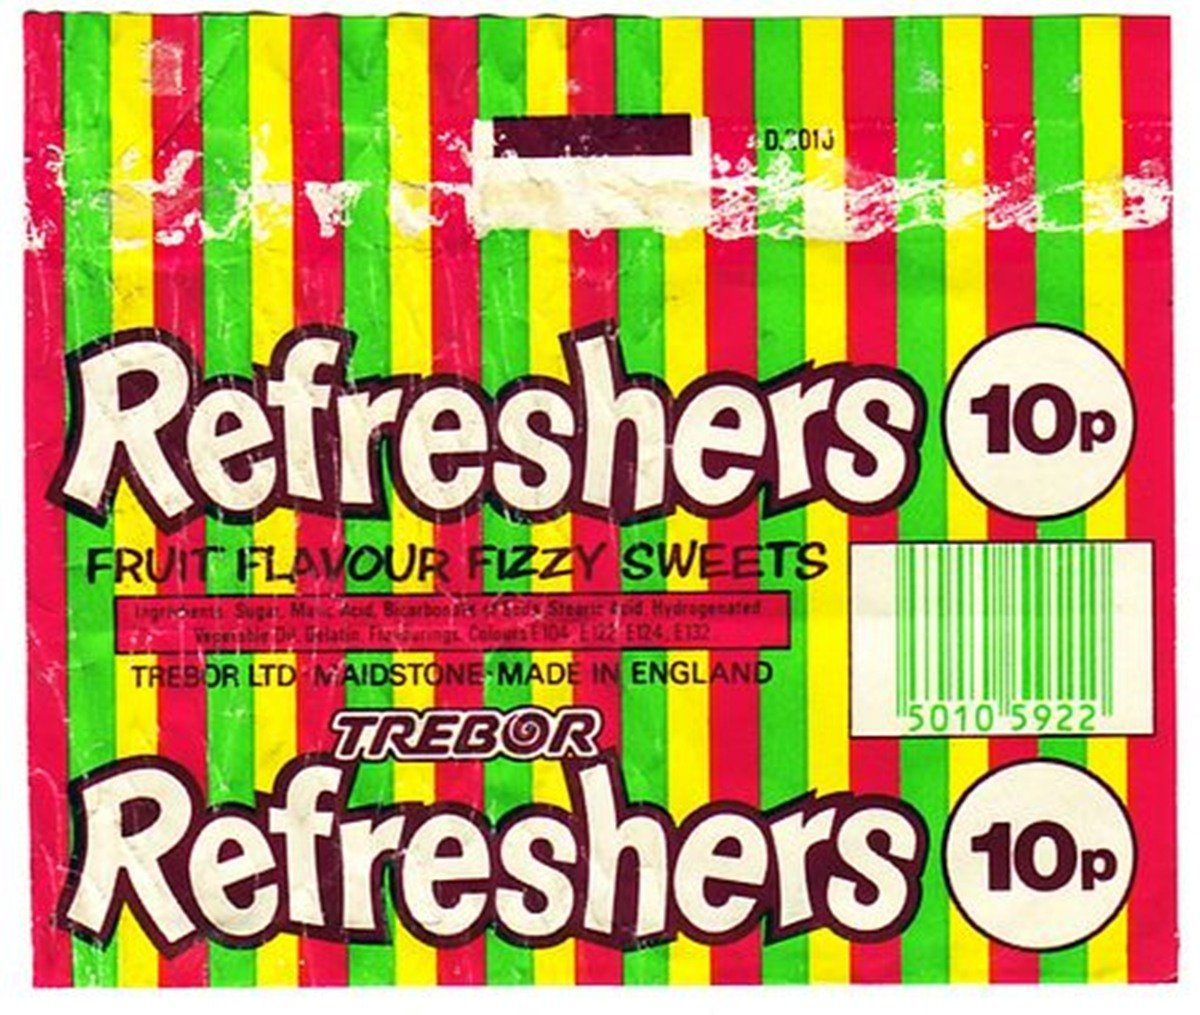 82 If You Remember At Least 10 Of These 14 Sweets Then You're A TRUE 80s Child!